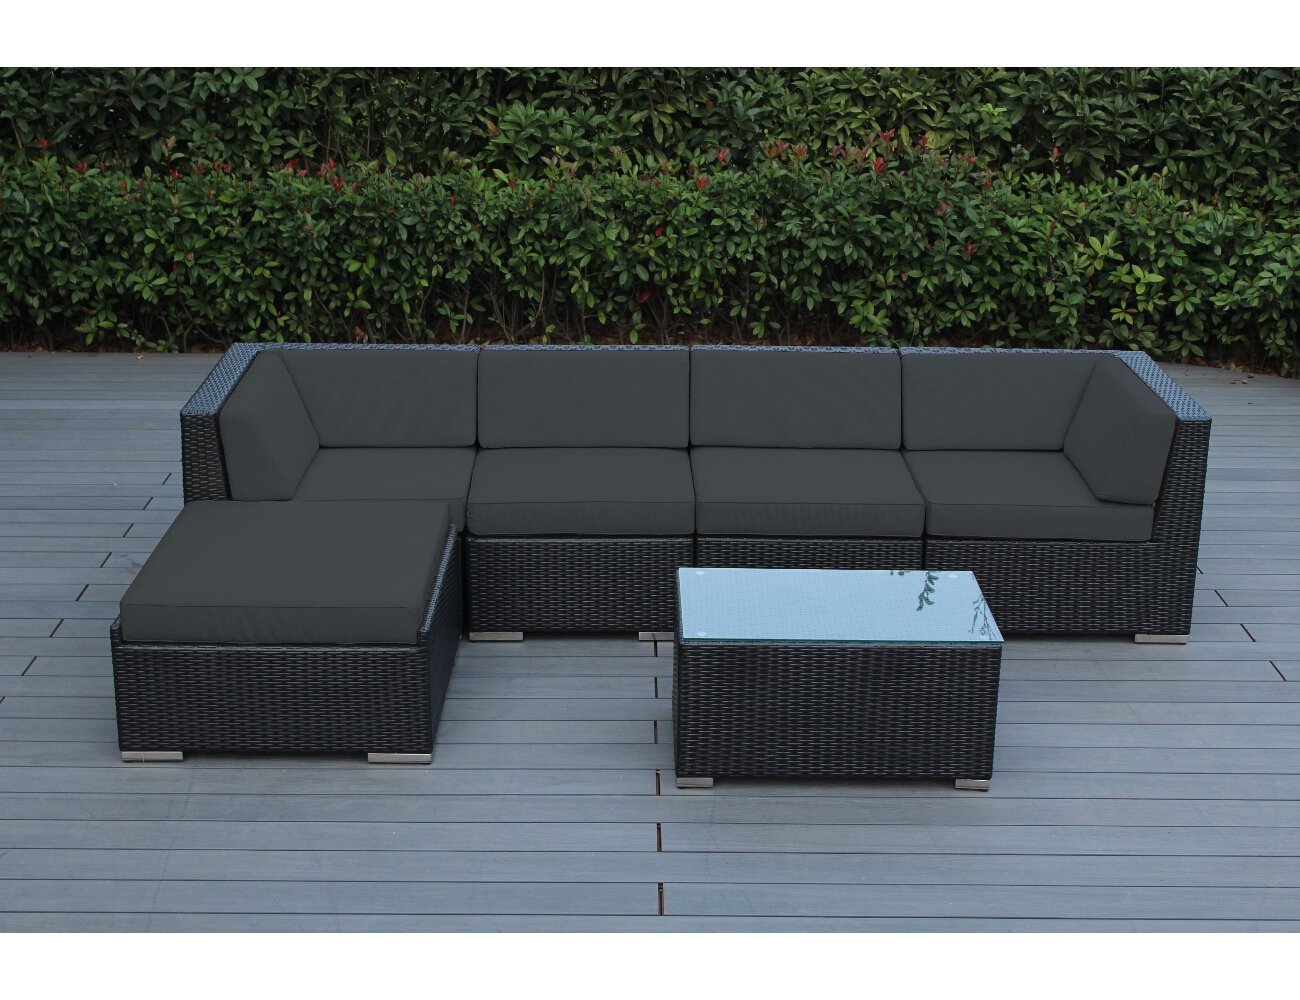 Genuine Ohana Outdoor Patio Wicker Furniture 6pc Sofa Set (Dark Gray) - All Weather PE Resin Wicker Couch Set provides a modular design, which enables flexibility with many configuration options. 6pc set includes 2 Corner Sofas + 2 Middle Sofas + 1 Large Ottoman + 1 Coffee Table Fade Resistant Cushion Covers come with zipper for easy cleaning. - patio-furniture, patio, conversation-sets - 71lXTQwdasL -